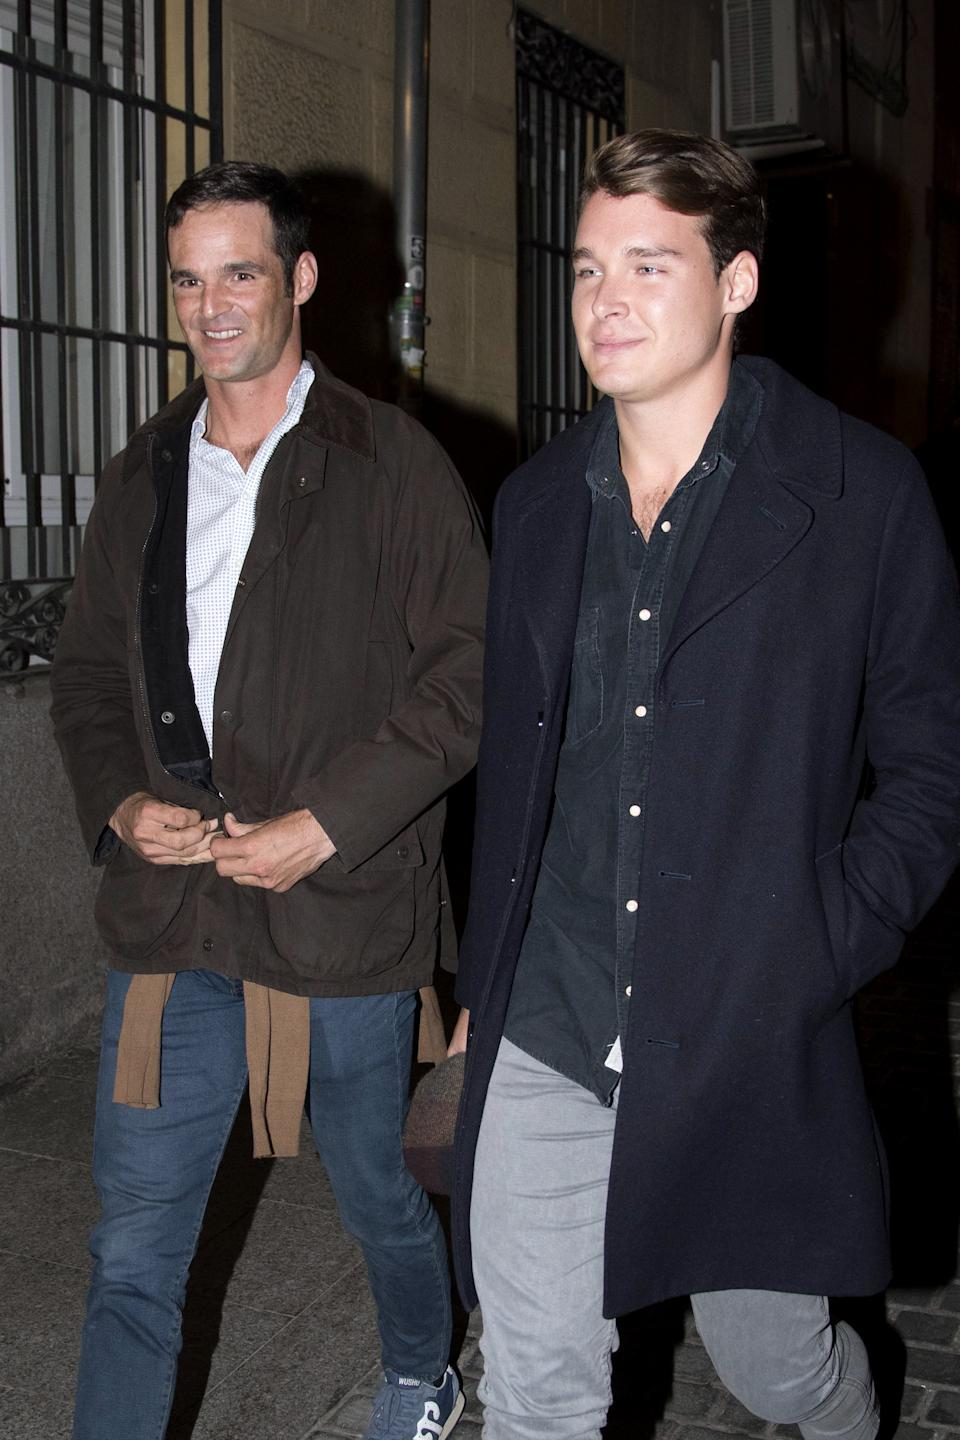 MADRID, SPAIN - NOVEMBER 11: (L-R) Jose Bono Rodriguez and Aitor Gomez are seen on November 11, 2019 in Madrid, Spain. (Photo by Europa Press Entertainment/Europa Press via Getty Images)